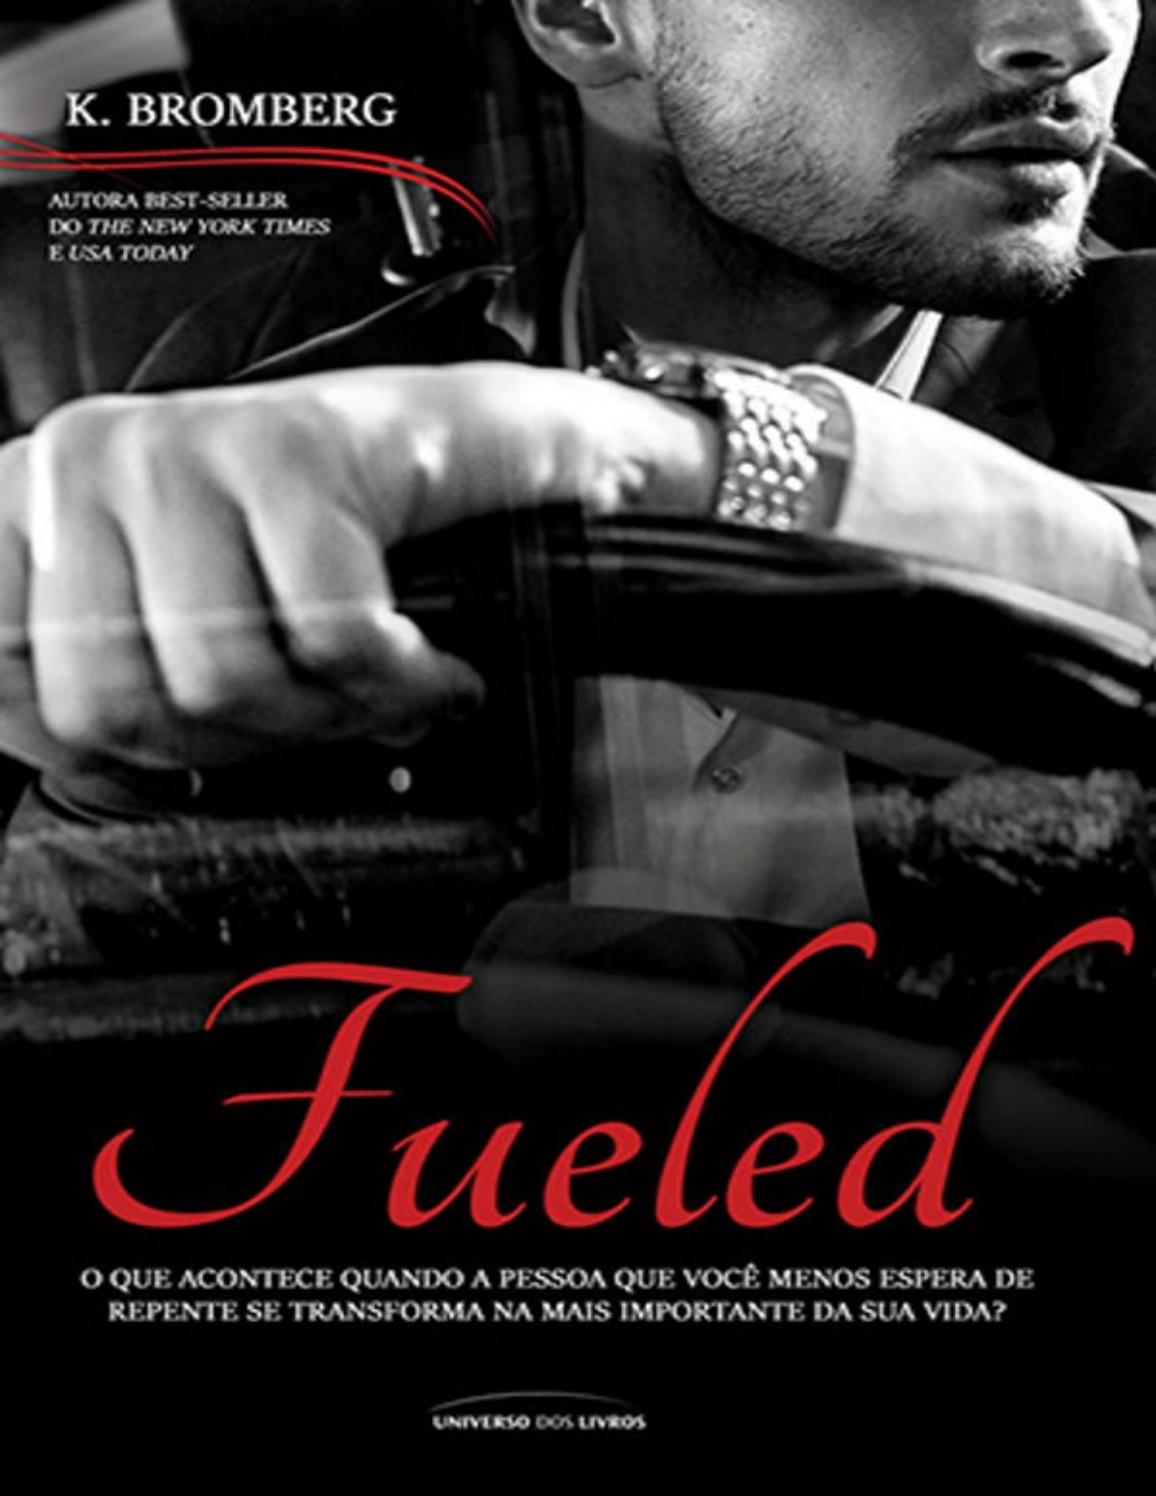 THE DRIVEN 2 FUELED K. Bromberg by Jessika issuu